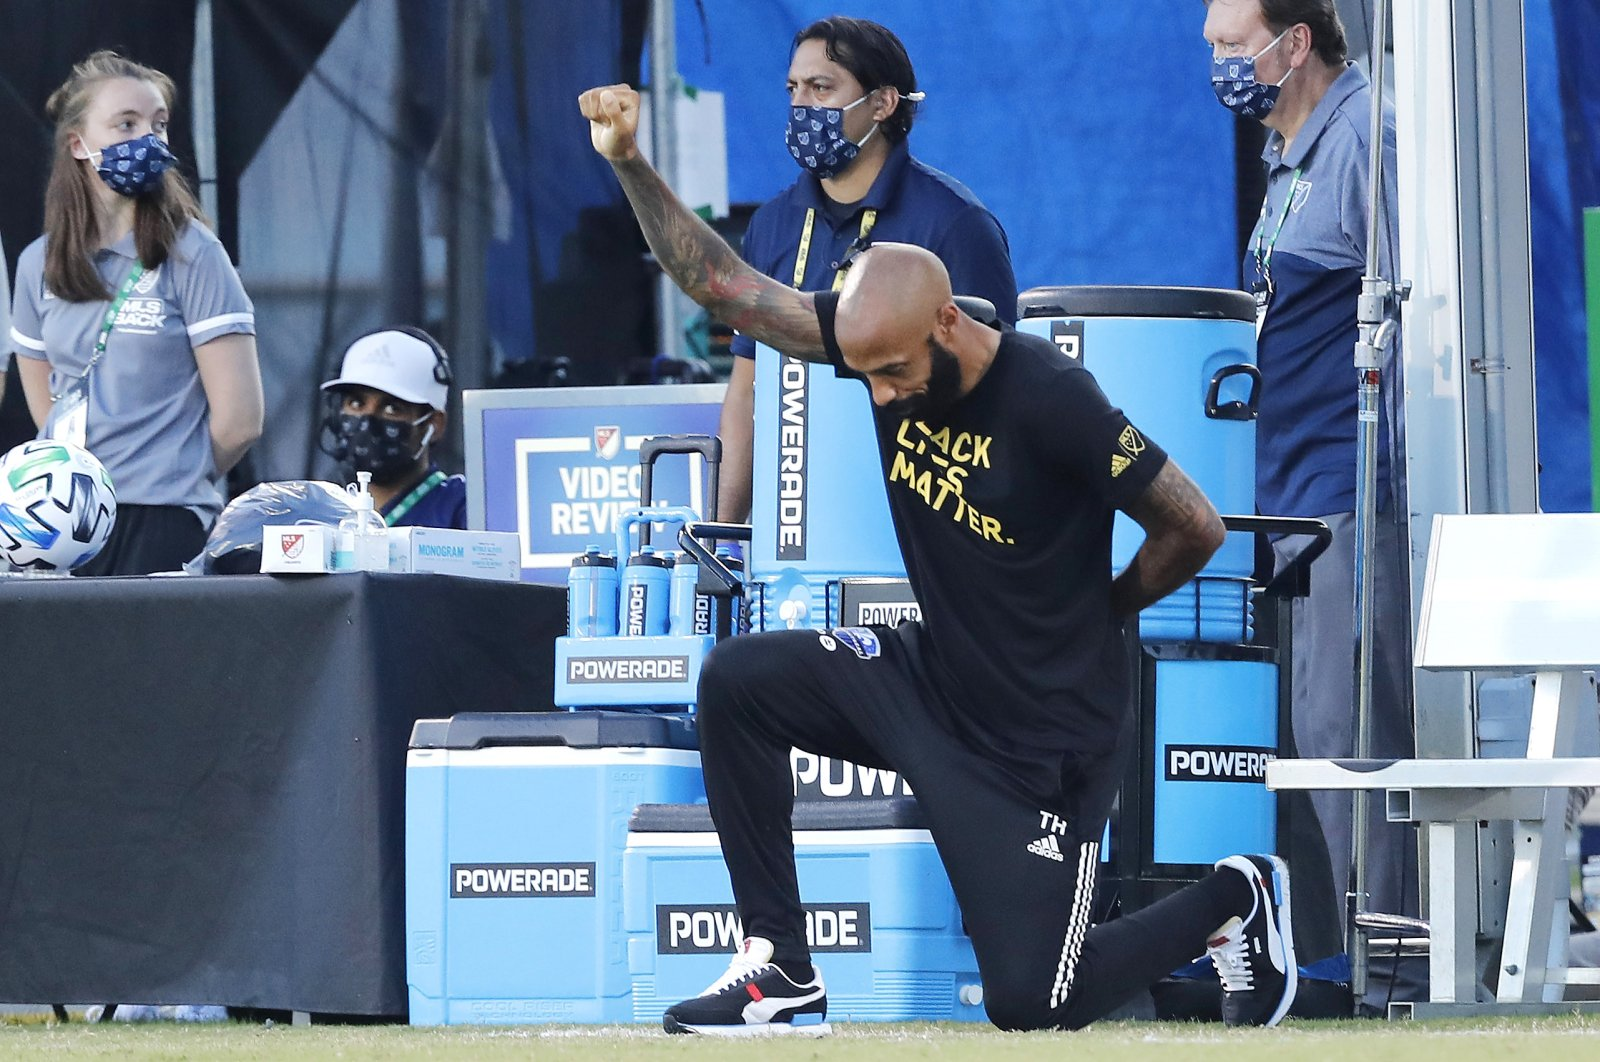 Montreal Impact head coach Thierry Henry takes a knee in support of the Black Lives Matter movement prior to the Group C football match between Montreal Impact and Toronto FC as part of the MLS Is Back Tournament at ESPN Wide World of Sports Complex in Reunion, Florida, July 16, 2020. (Getty Images)